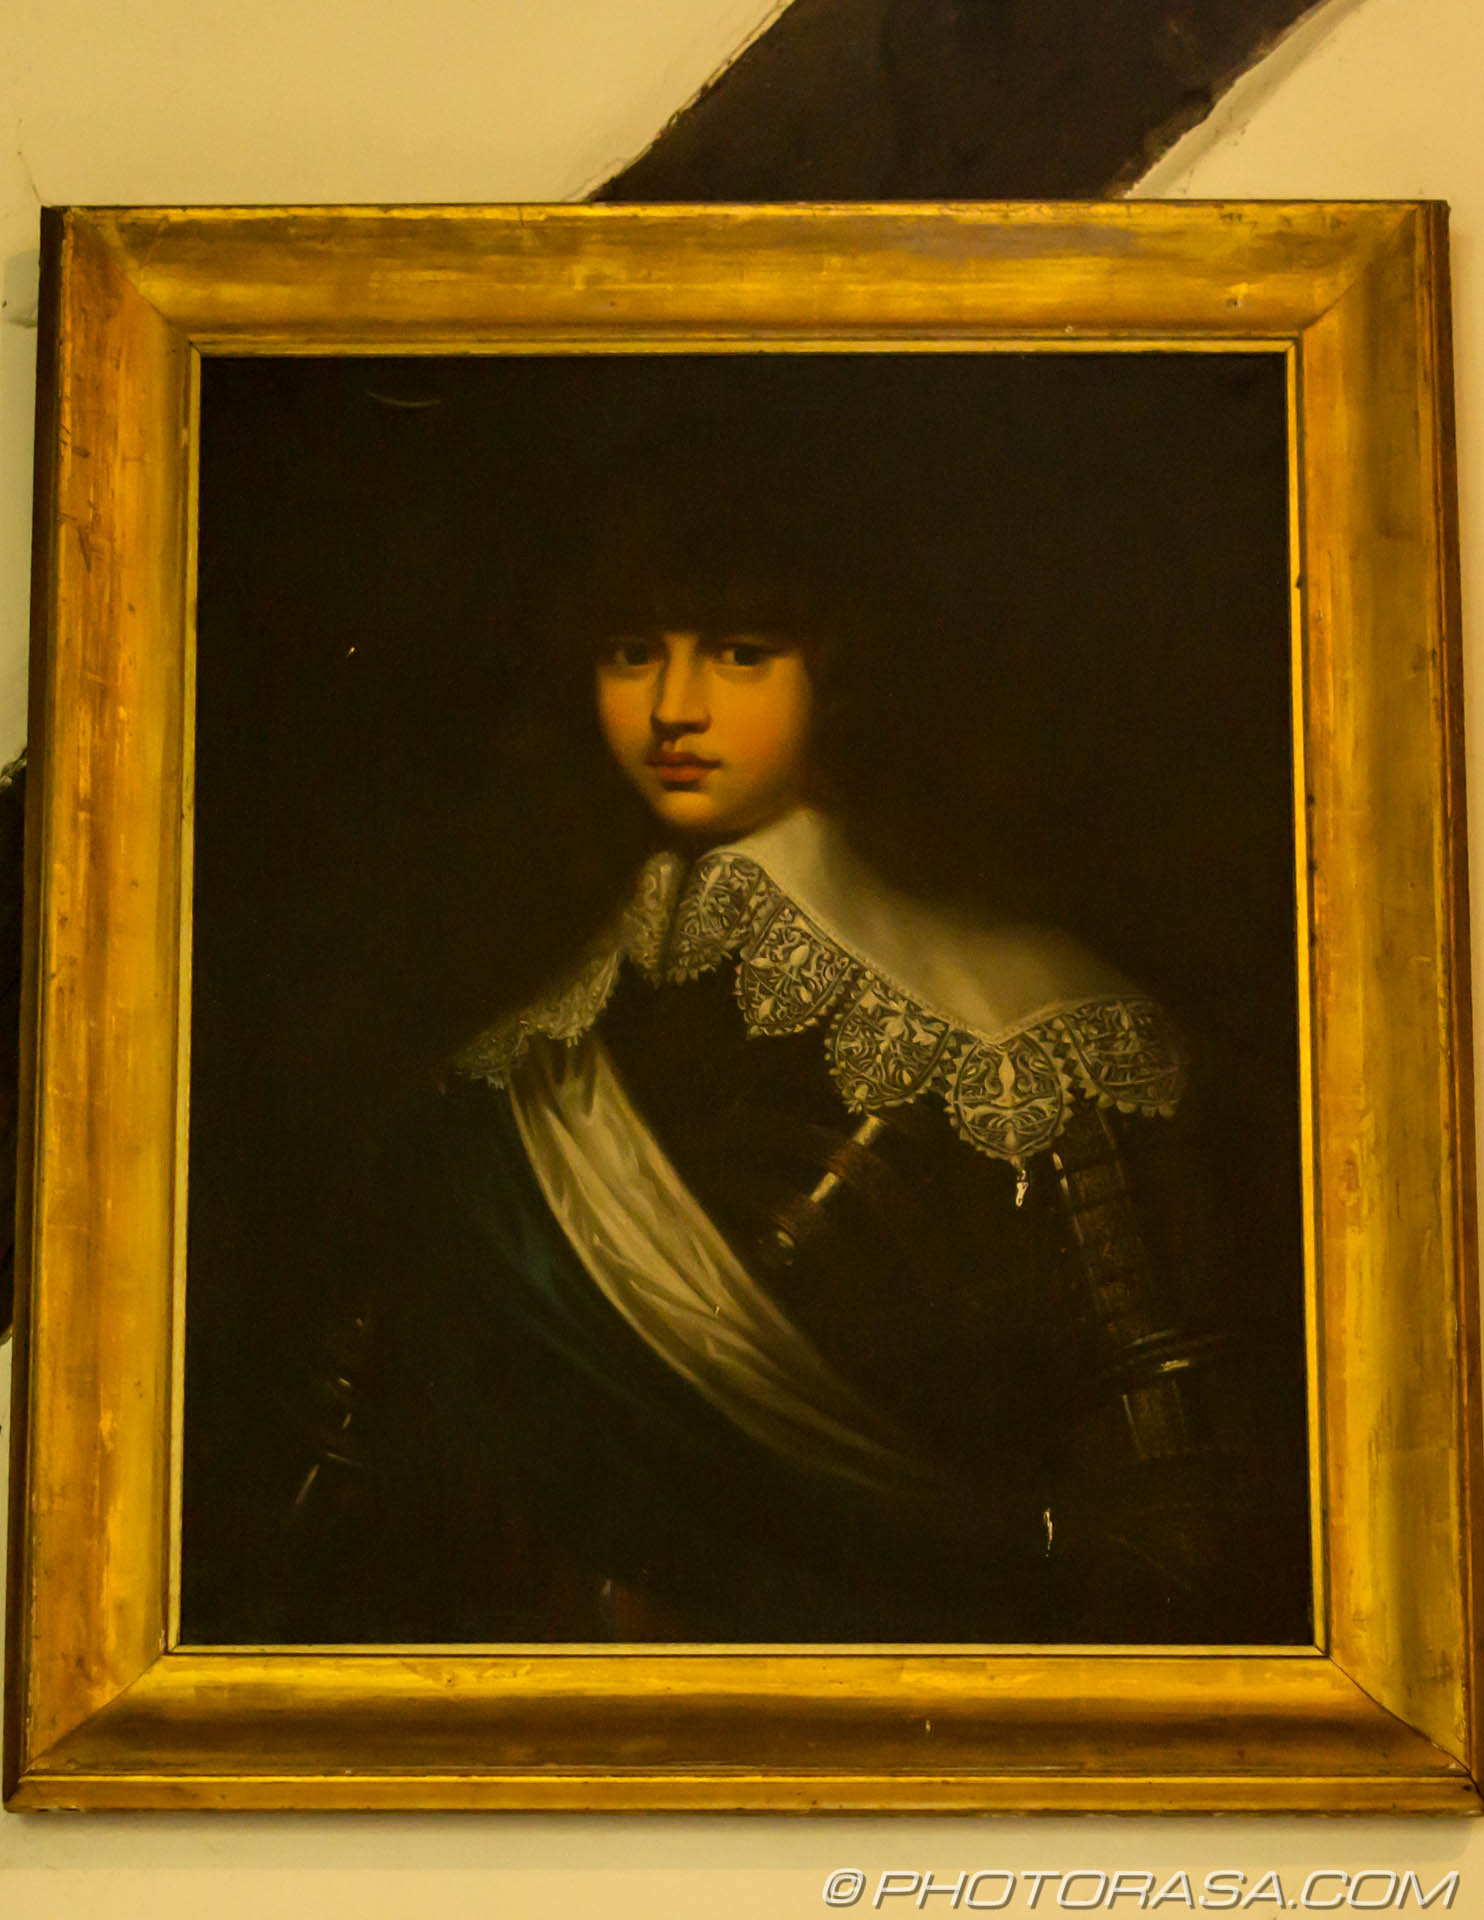 http://photorasa.com/stoneacre-house-paintings/17th-century-painting-of-prince-waldemar-christian-of-denmark/